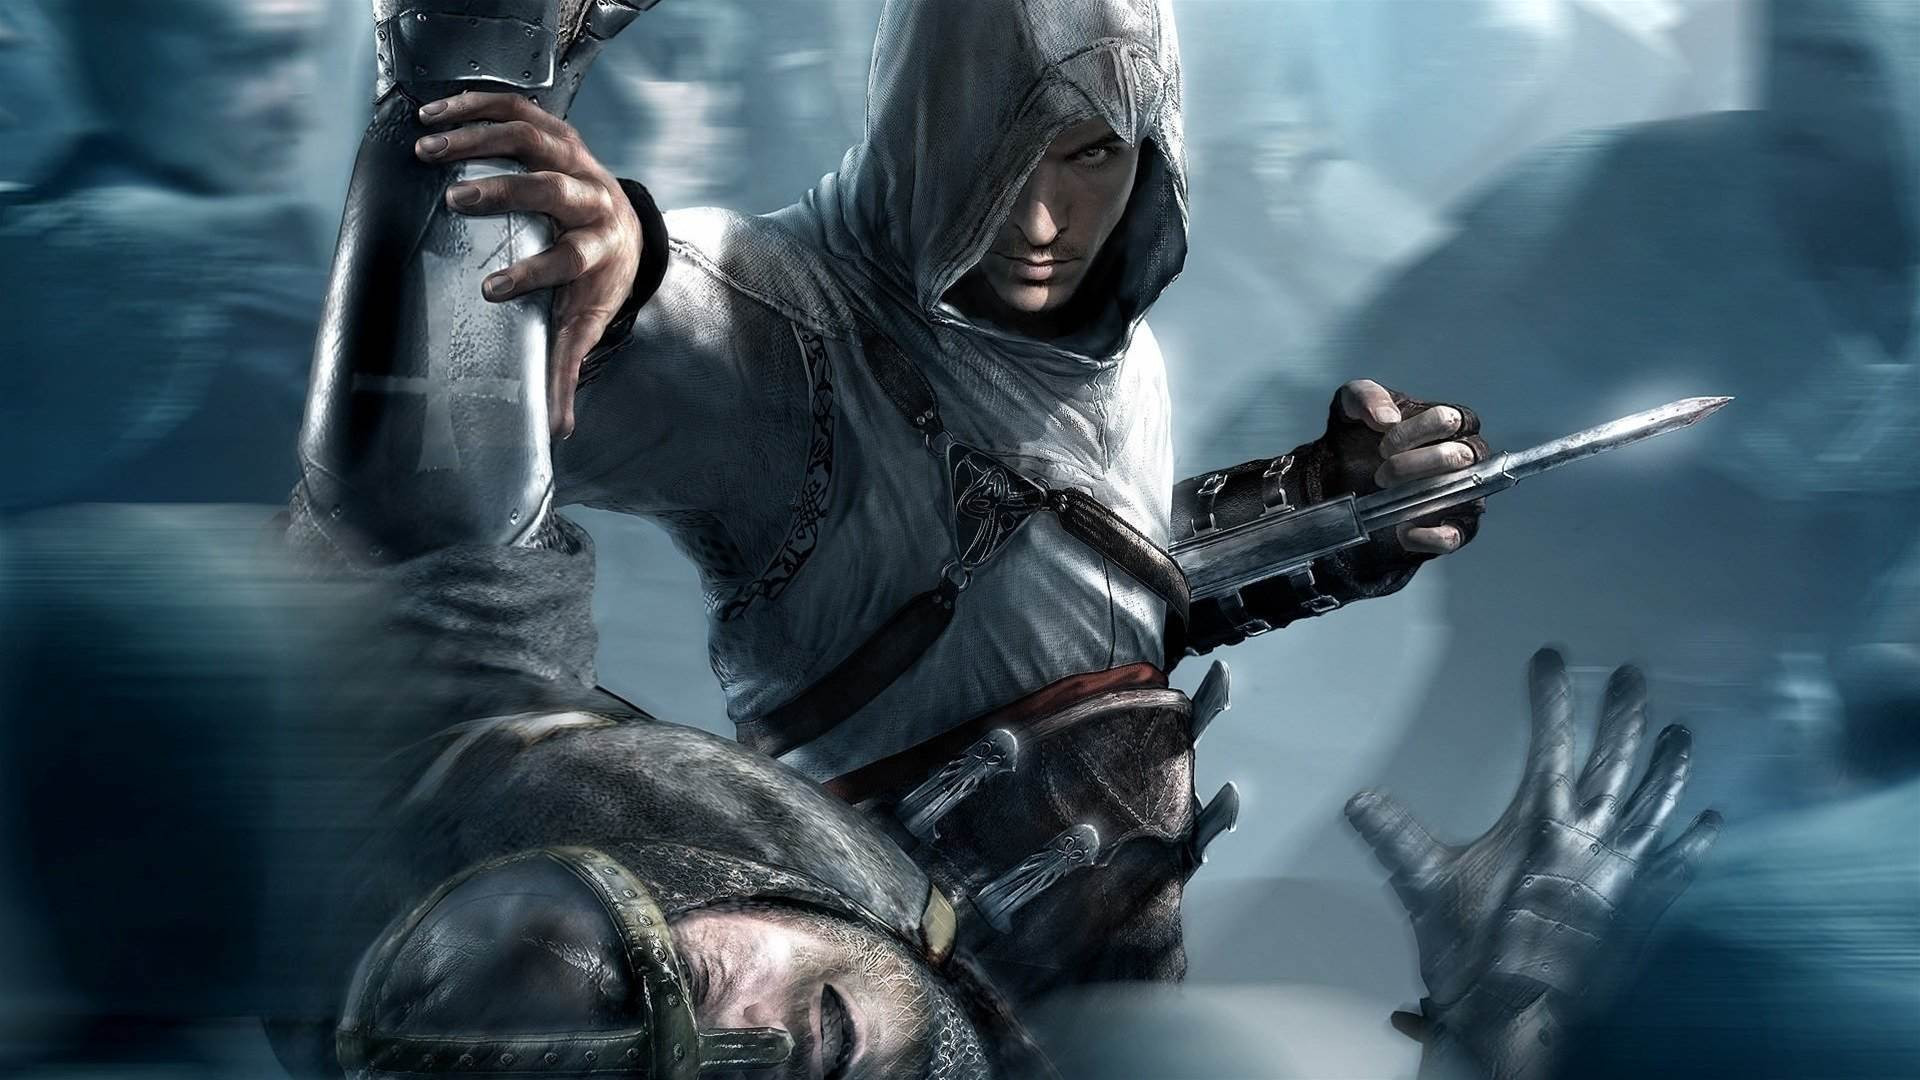 Every main Assassin's Creed game ranked from worst to best